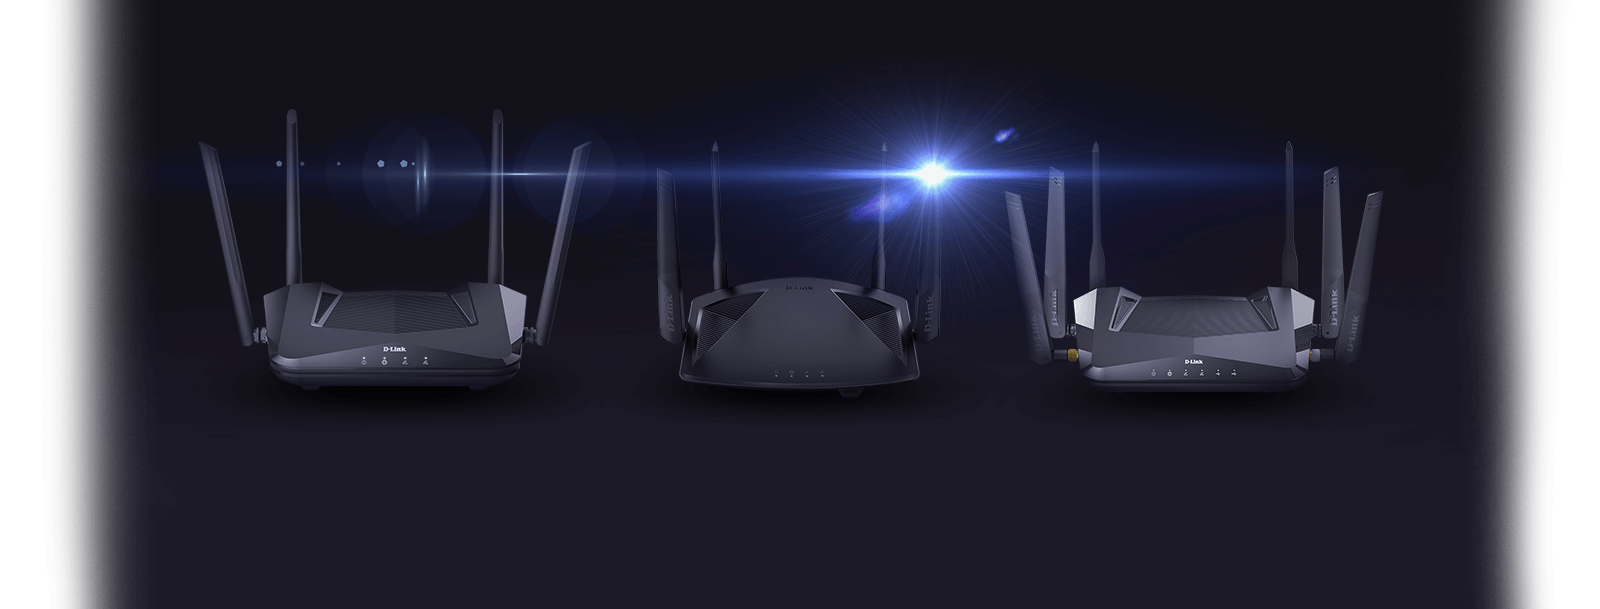 D-Link Wi-Fi 6 routers DIR-X1560, DIR-X1860, DIR-X5460, on a black background a lens flare.